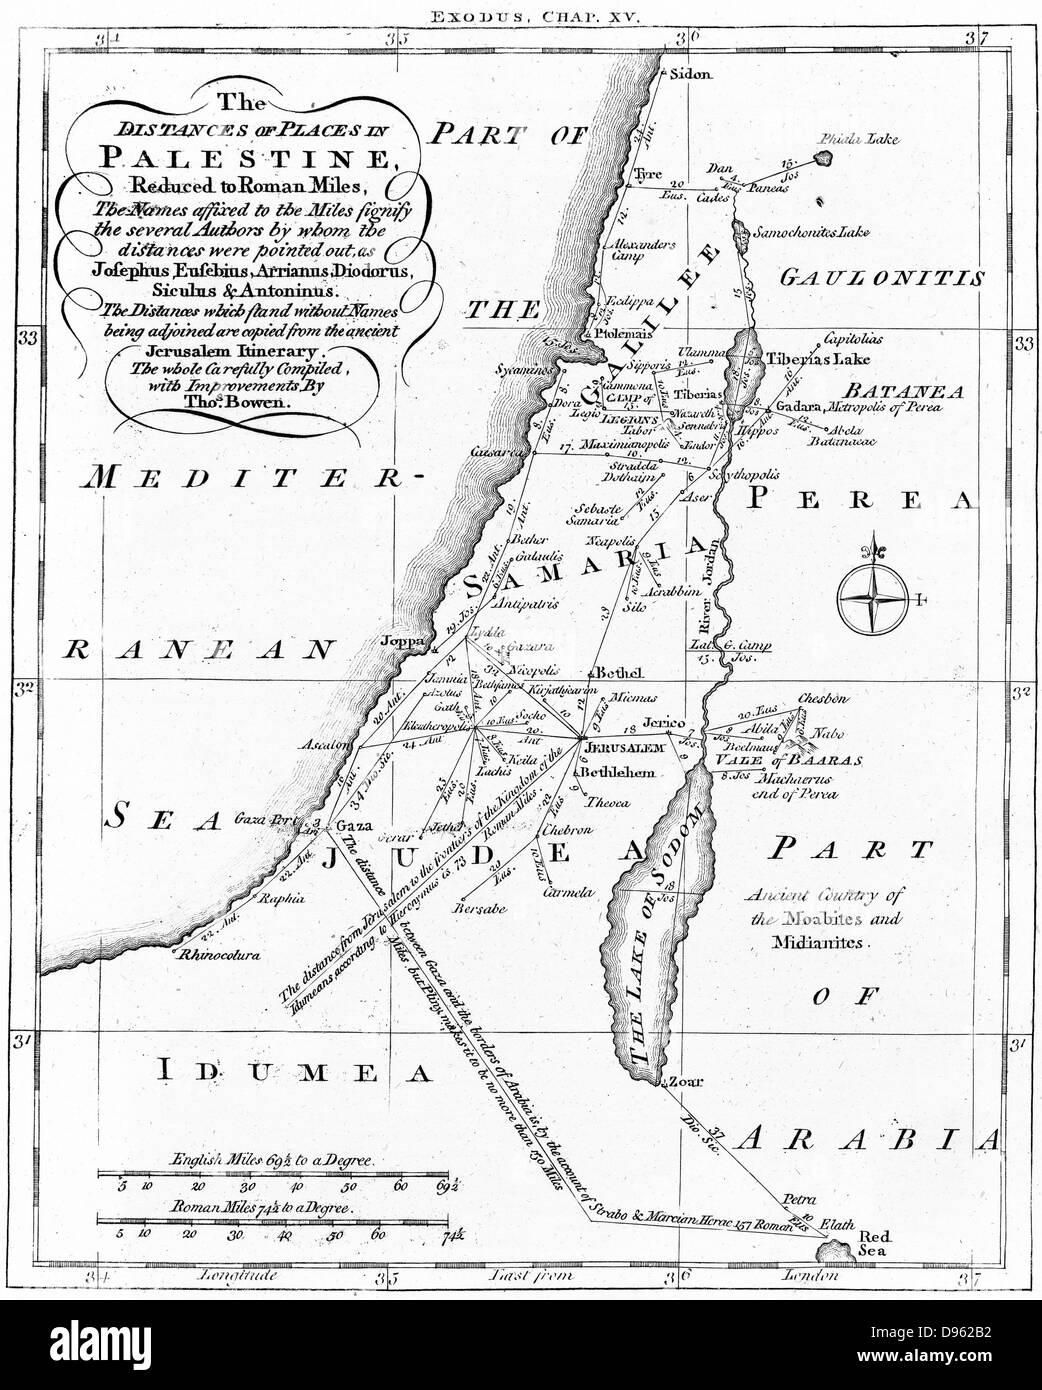 Map of Palestine showing distances in Roman miles. Based on various ancient authors and the ' Jerusalem Itinerary'. - Stock Image